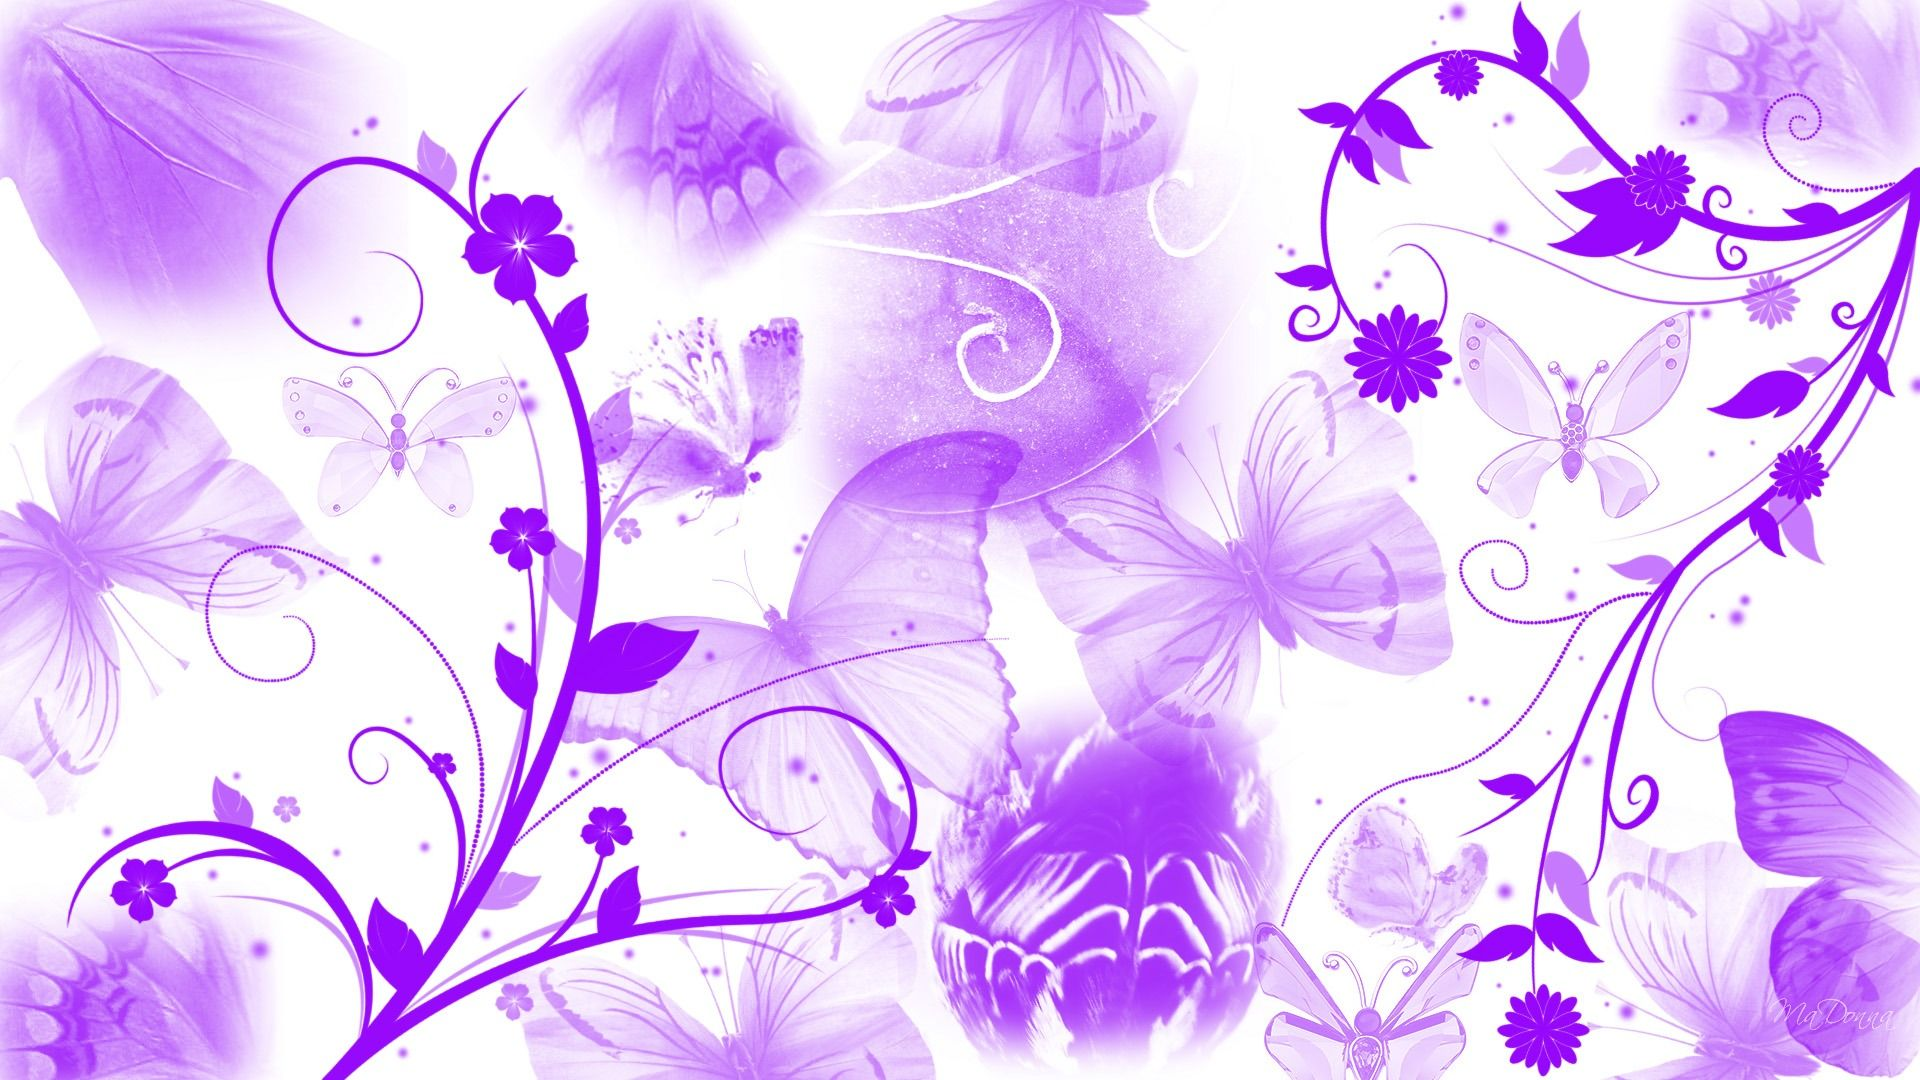 Purple butterfly abstract abstract wallpapers wallike purple is purple butterfly abstract abstract wallpapers wallike thecheapjerseys Choice Image